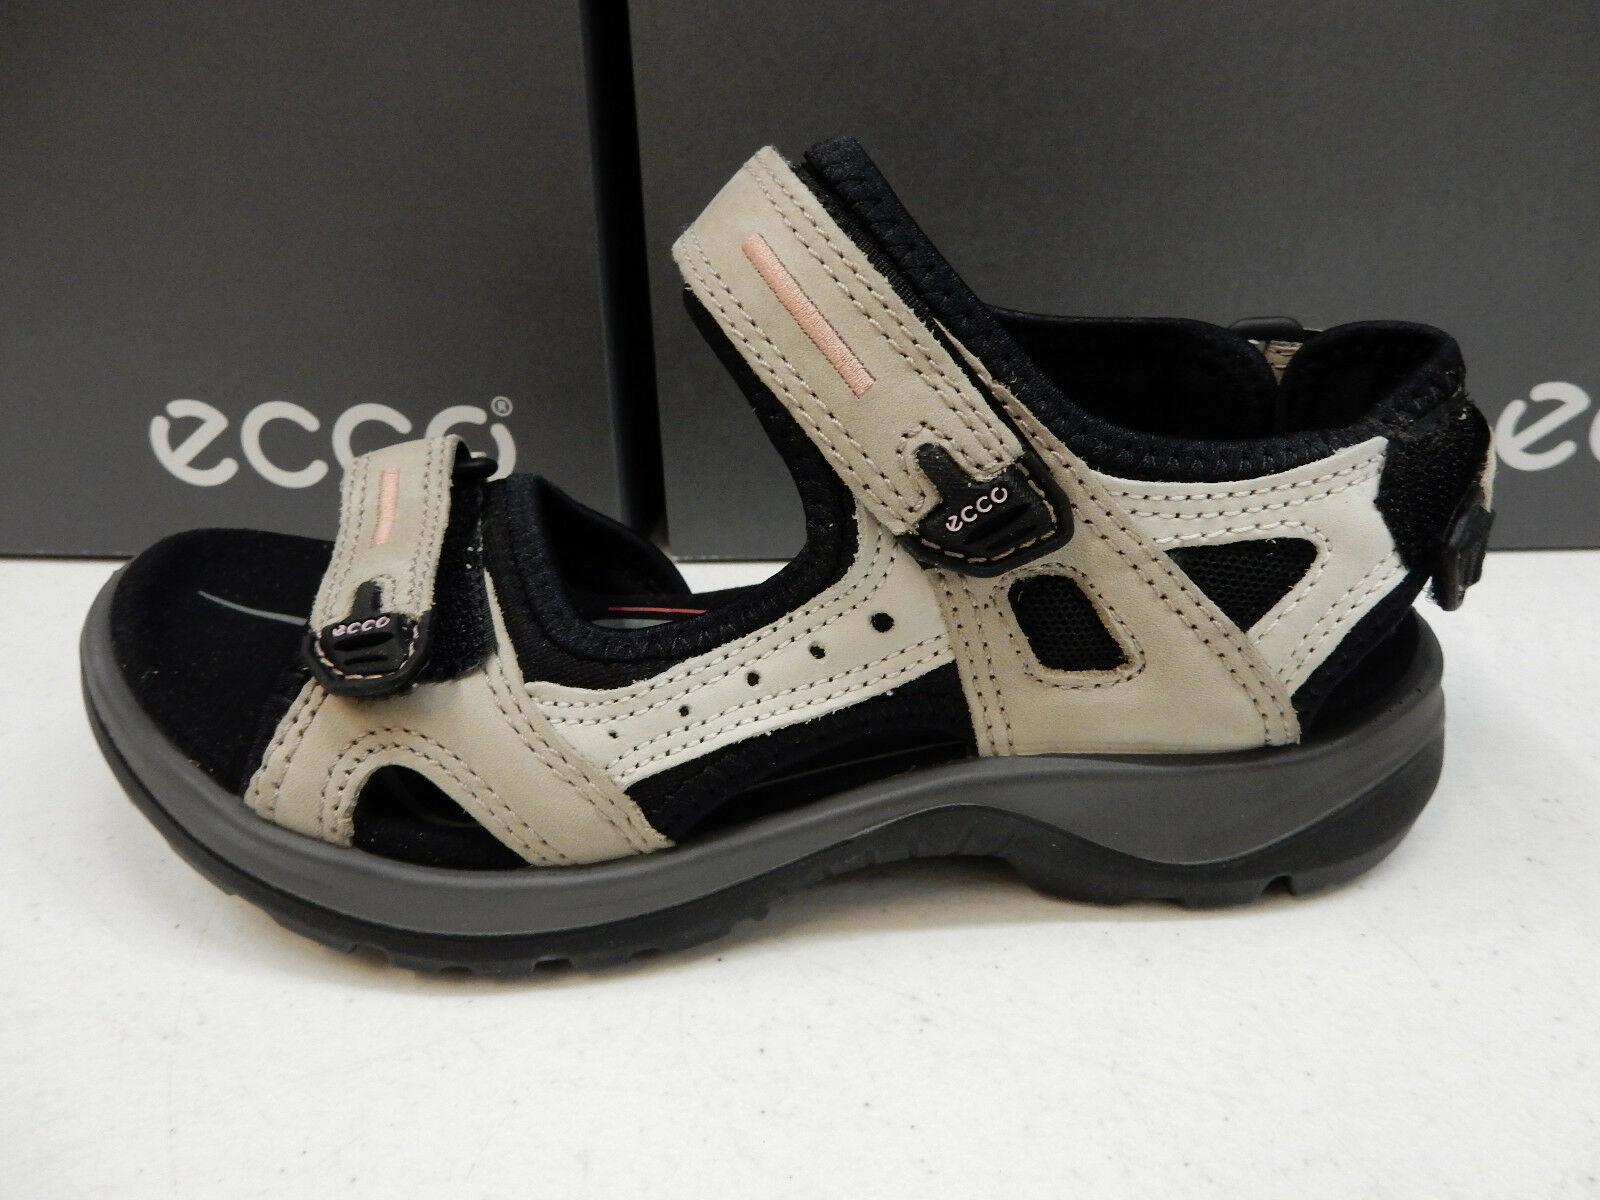 ECCO WOMENS SANDALS YUCATAN ATMOSPHERE ICE SIZE SIZE SIZE EU 38 403127